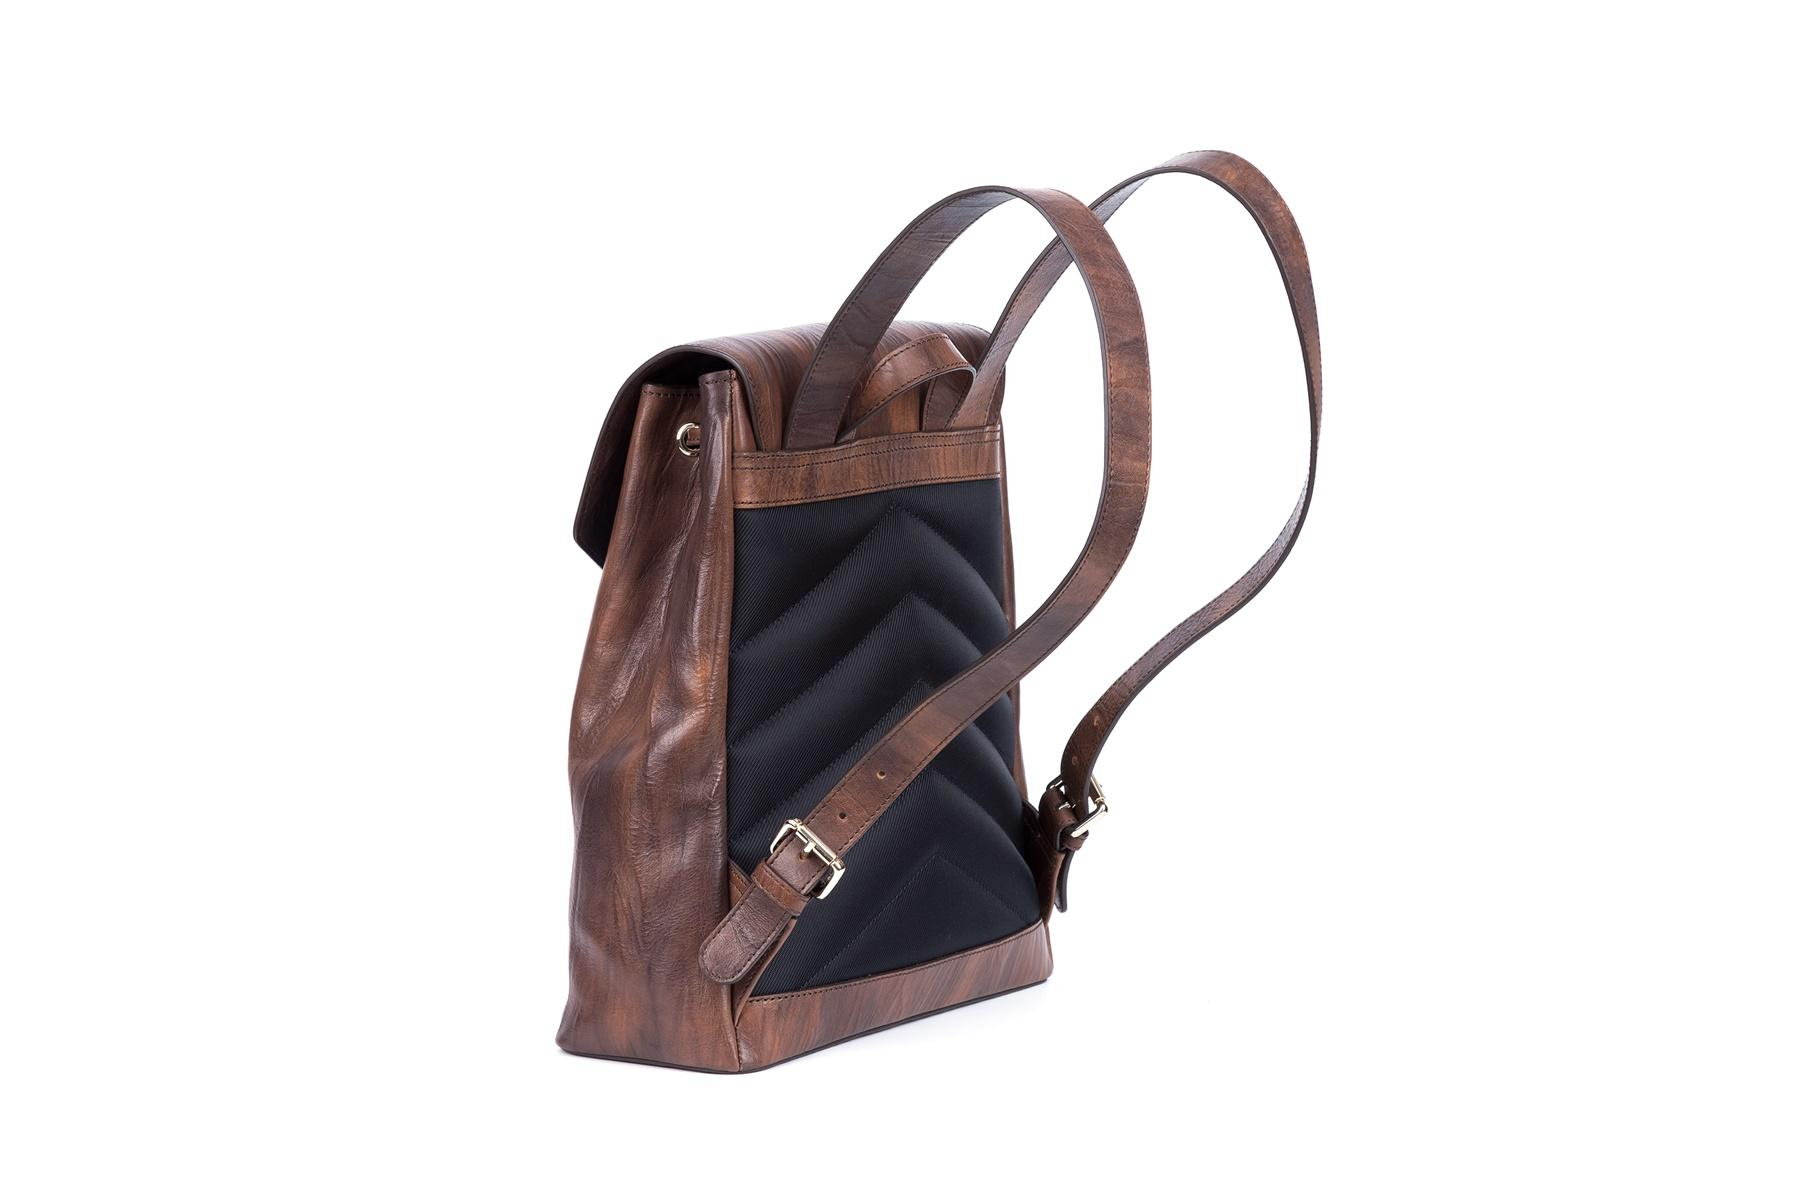 GF bags fabric stylish backpacks leather for travel